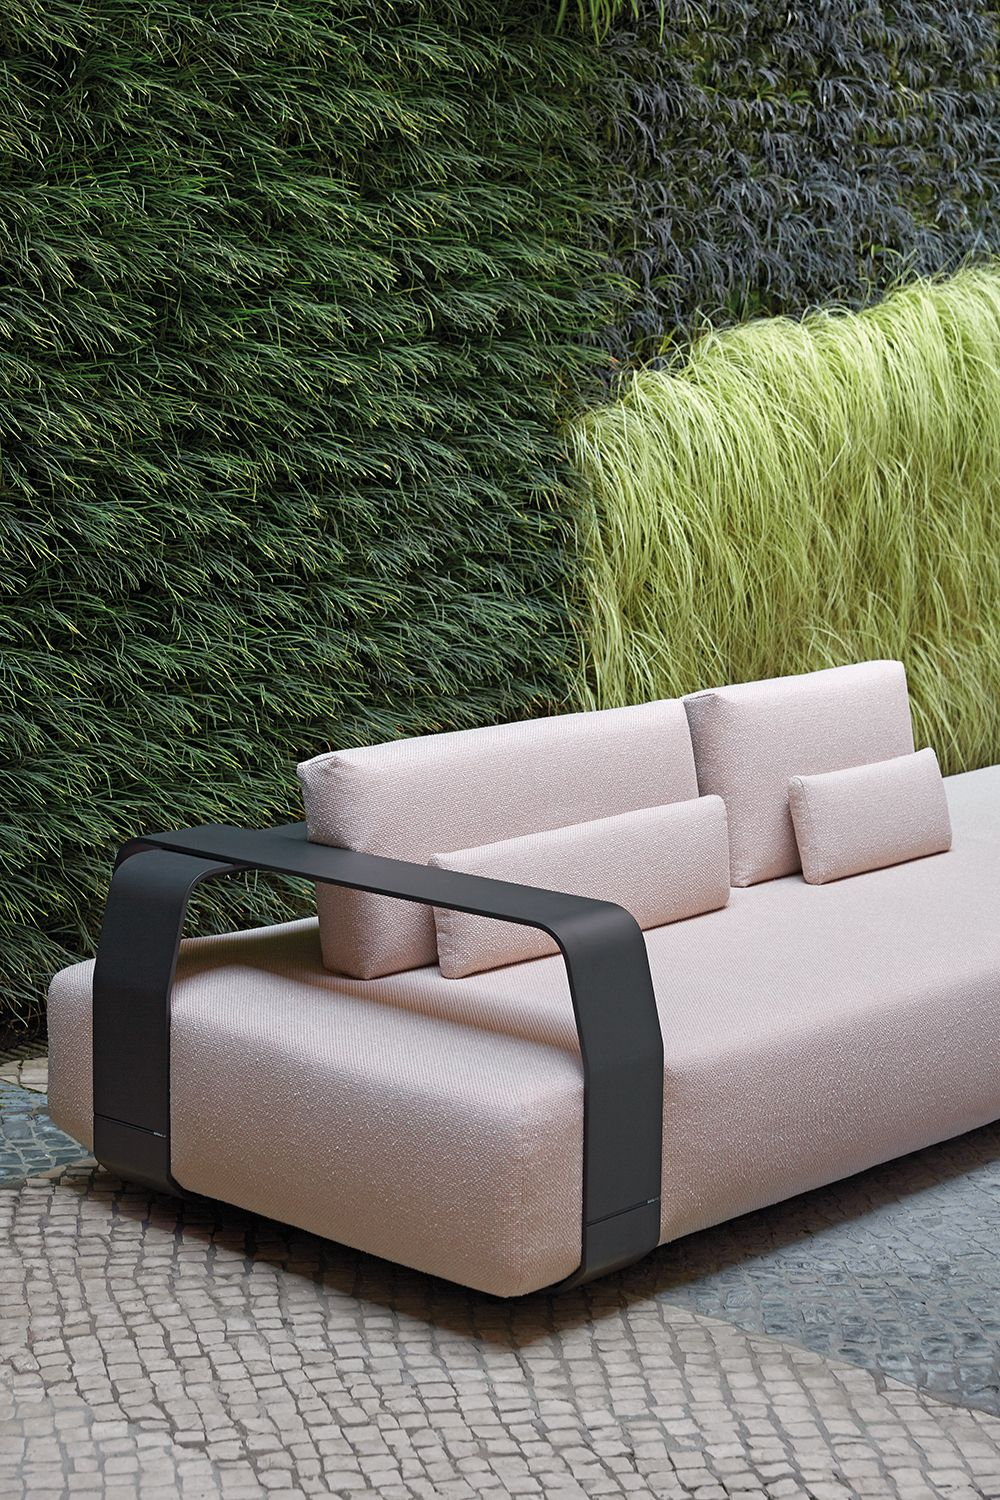 Outdoor Sofa KUMO By Lionel Doyen For Manutti. Modular Sofa Concept.  Interchangeable Back And